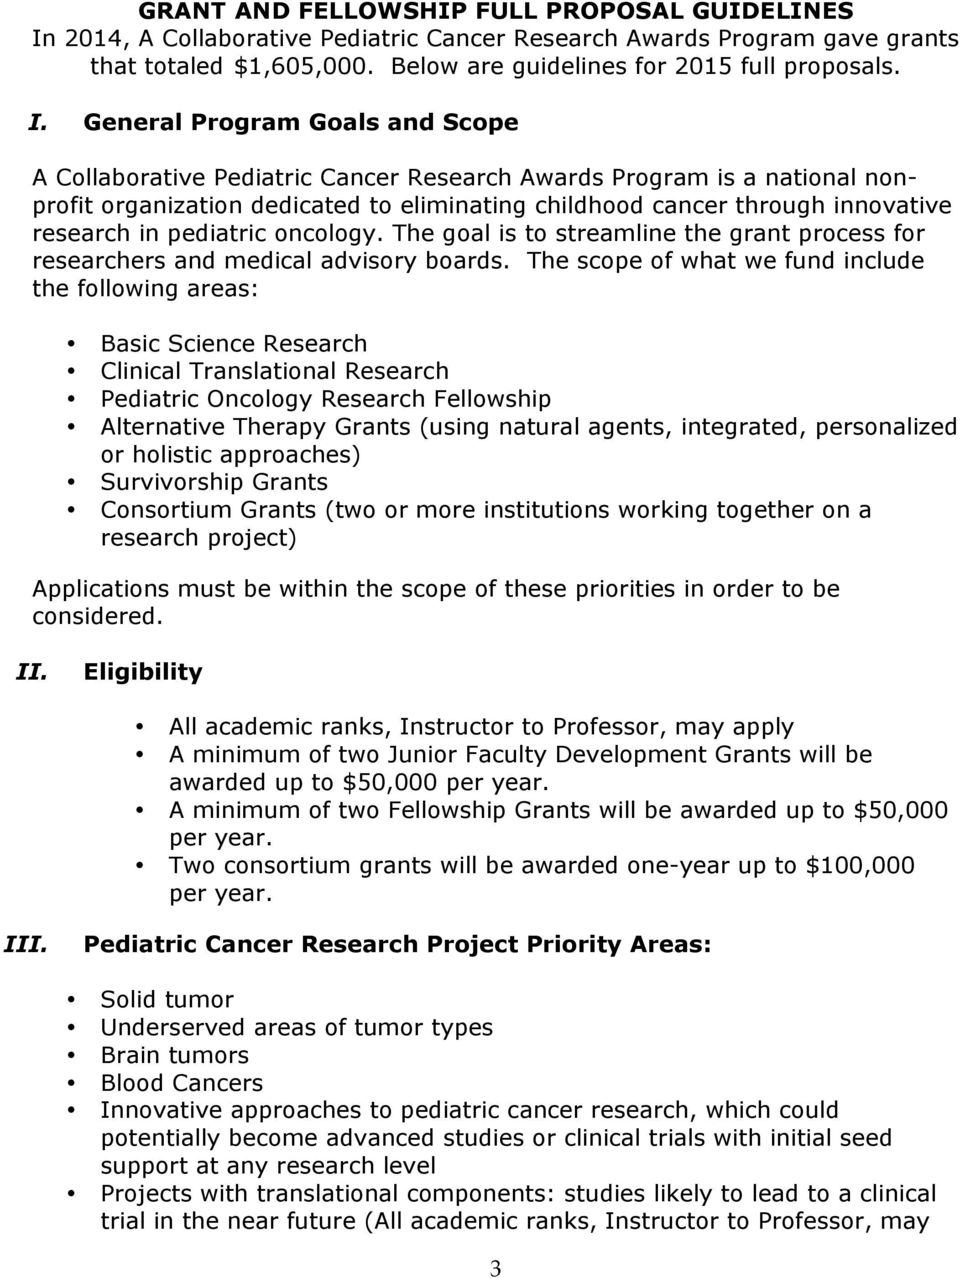 General Program Goals and Scope A Collaborative Pediatric Cancer Research Awards Program is a national nonprofit organization dedicated to eliminating childhood cancer through innovative research in